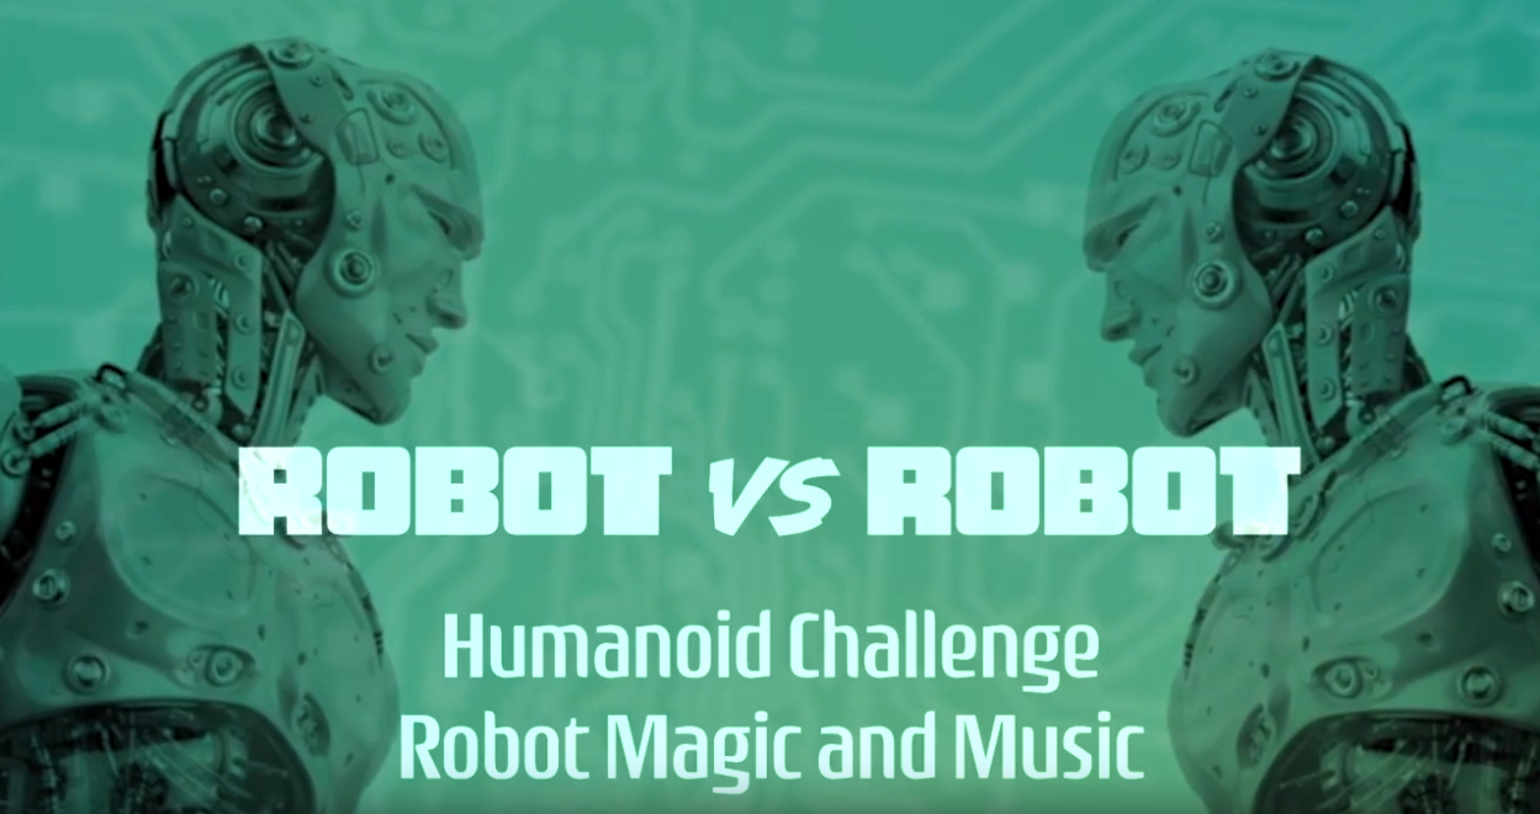 IROS TV 2019- Robot vs. Robot- Humanoid Challenge: Robot Magic and Music